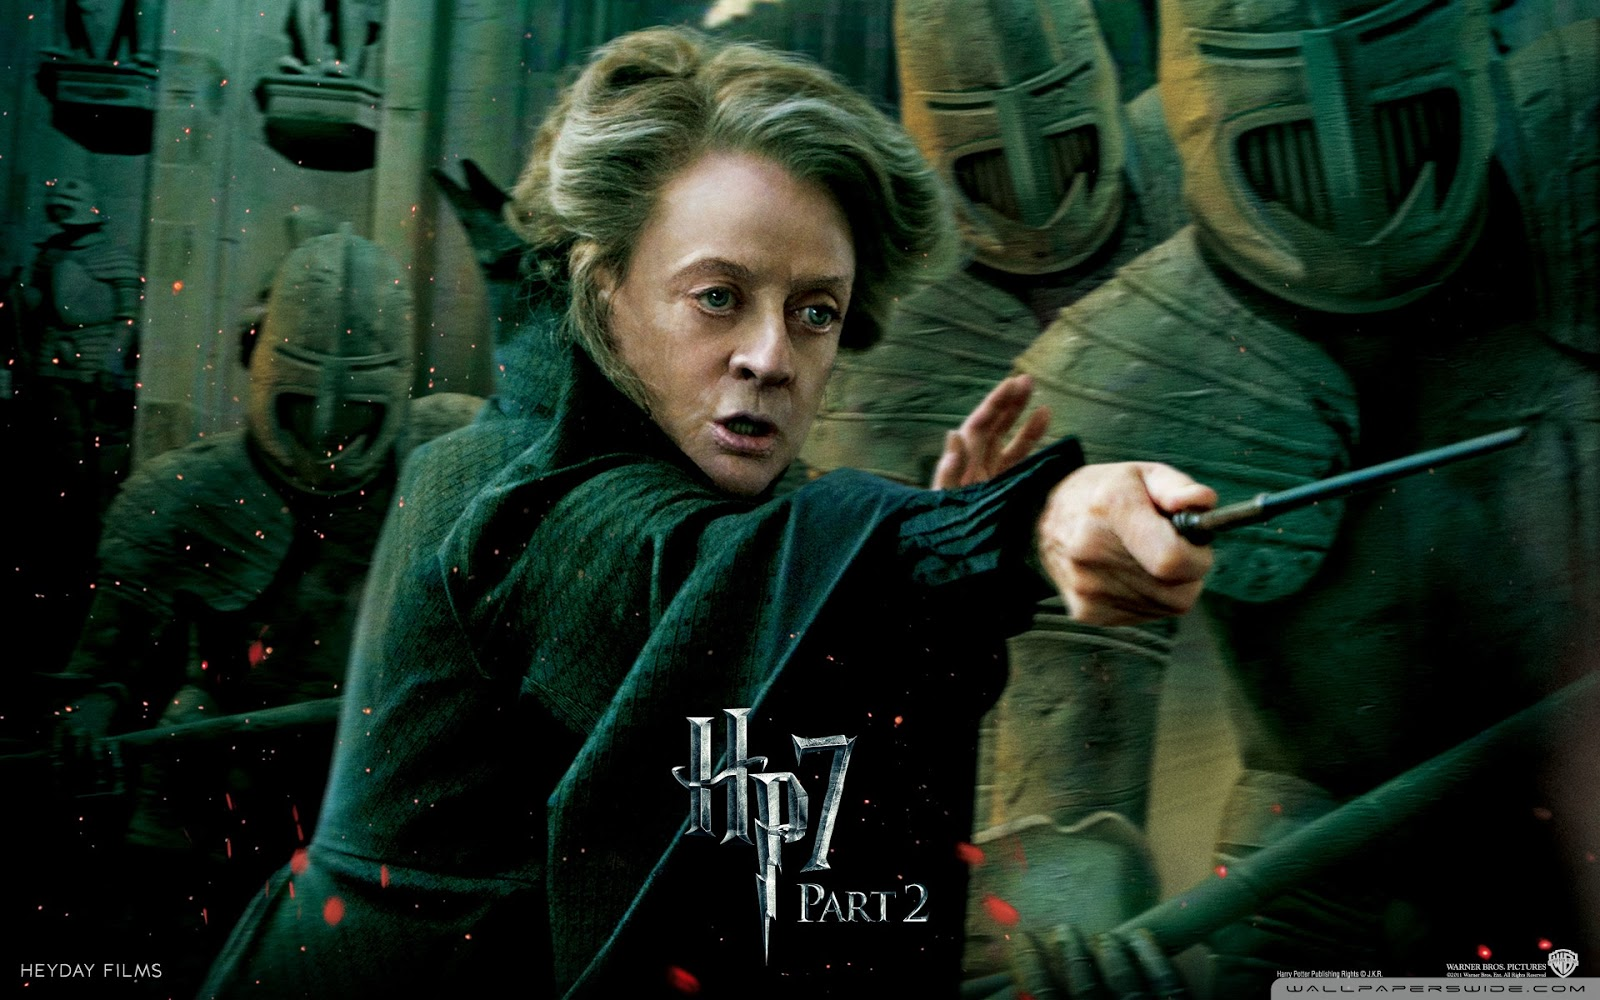 Harry Potter and the Deathly Hallows Part 2 Mcgonagall Wallpaper